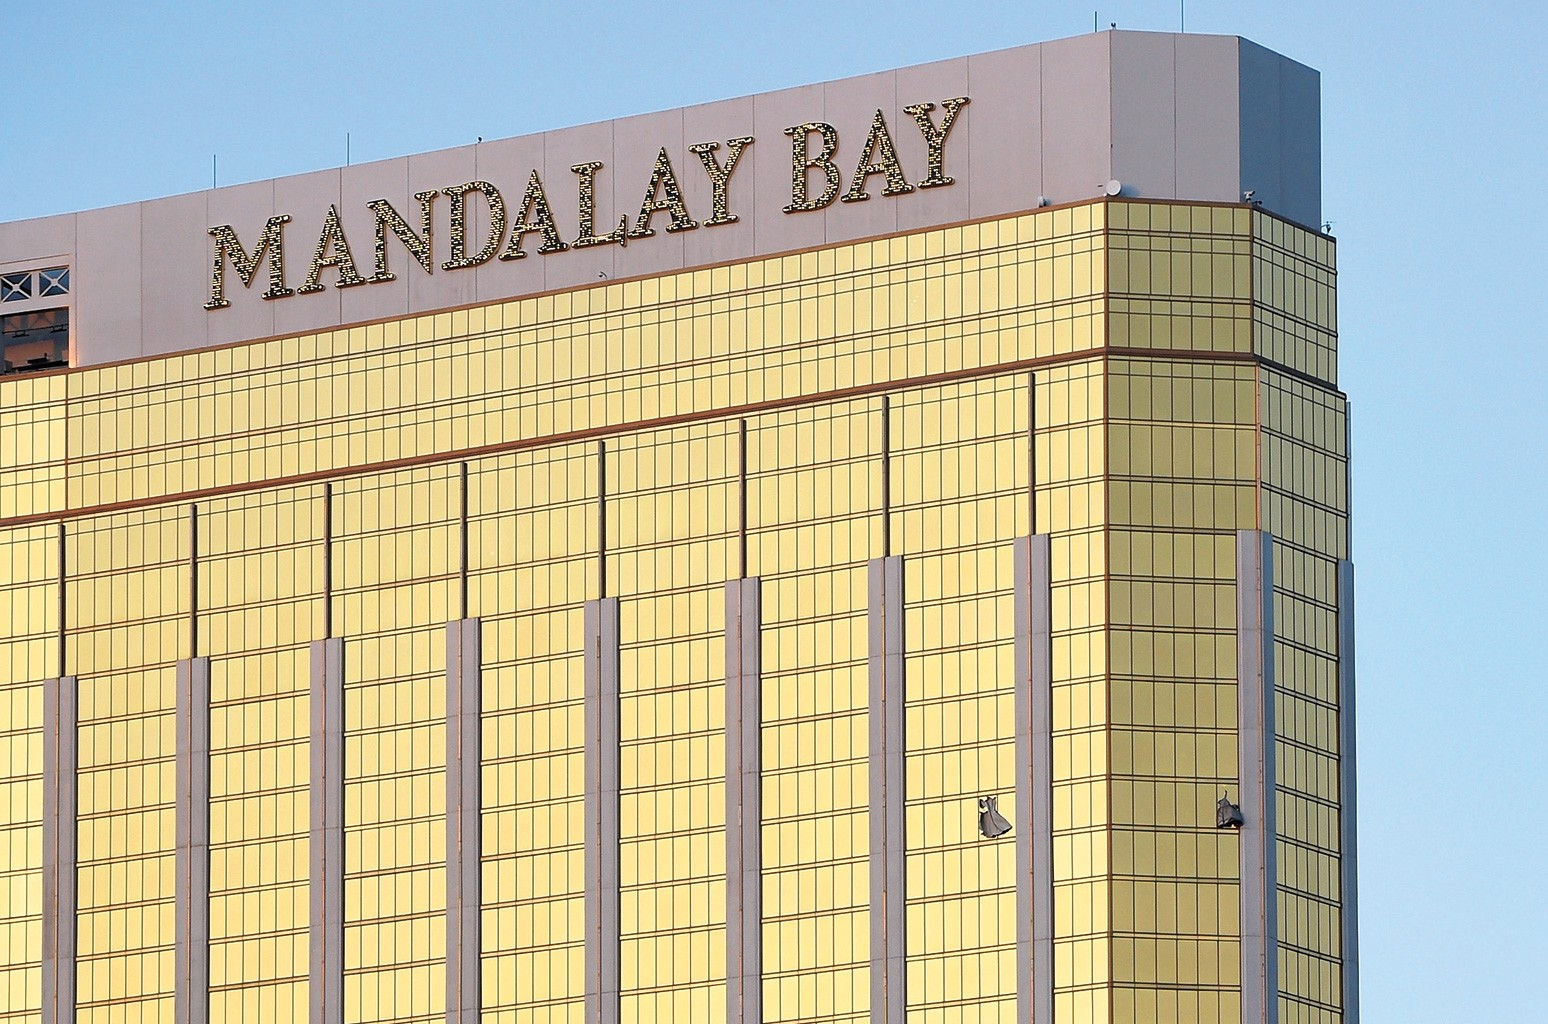 Tarps cover broken windows in The Mandalay Bay Resort and Casino  where the gunman opened fire on the crowd.